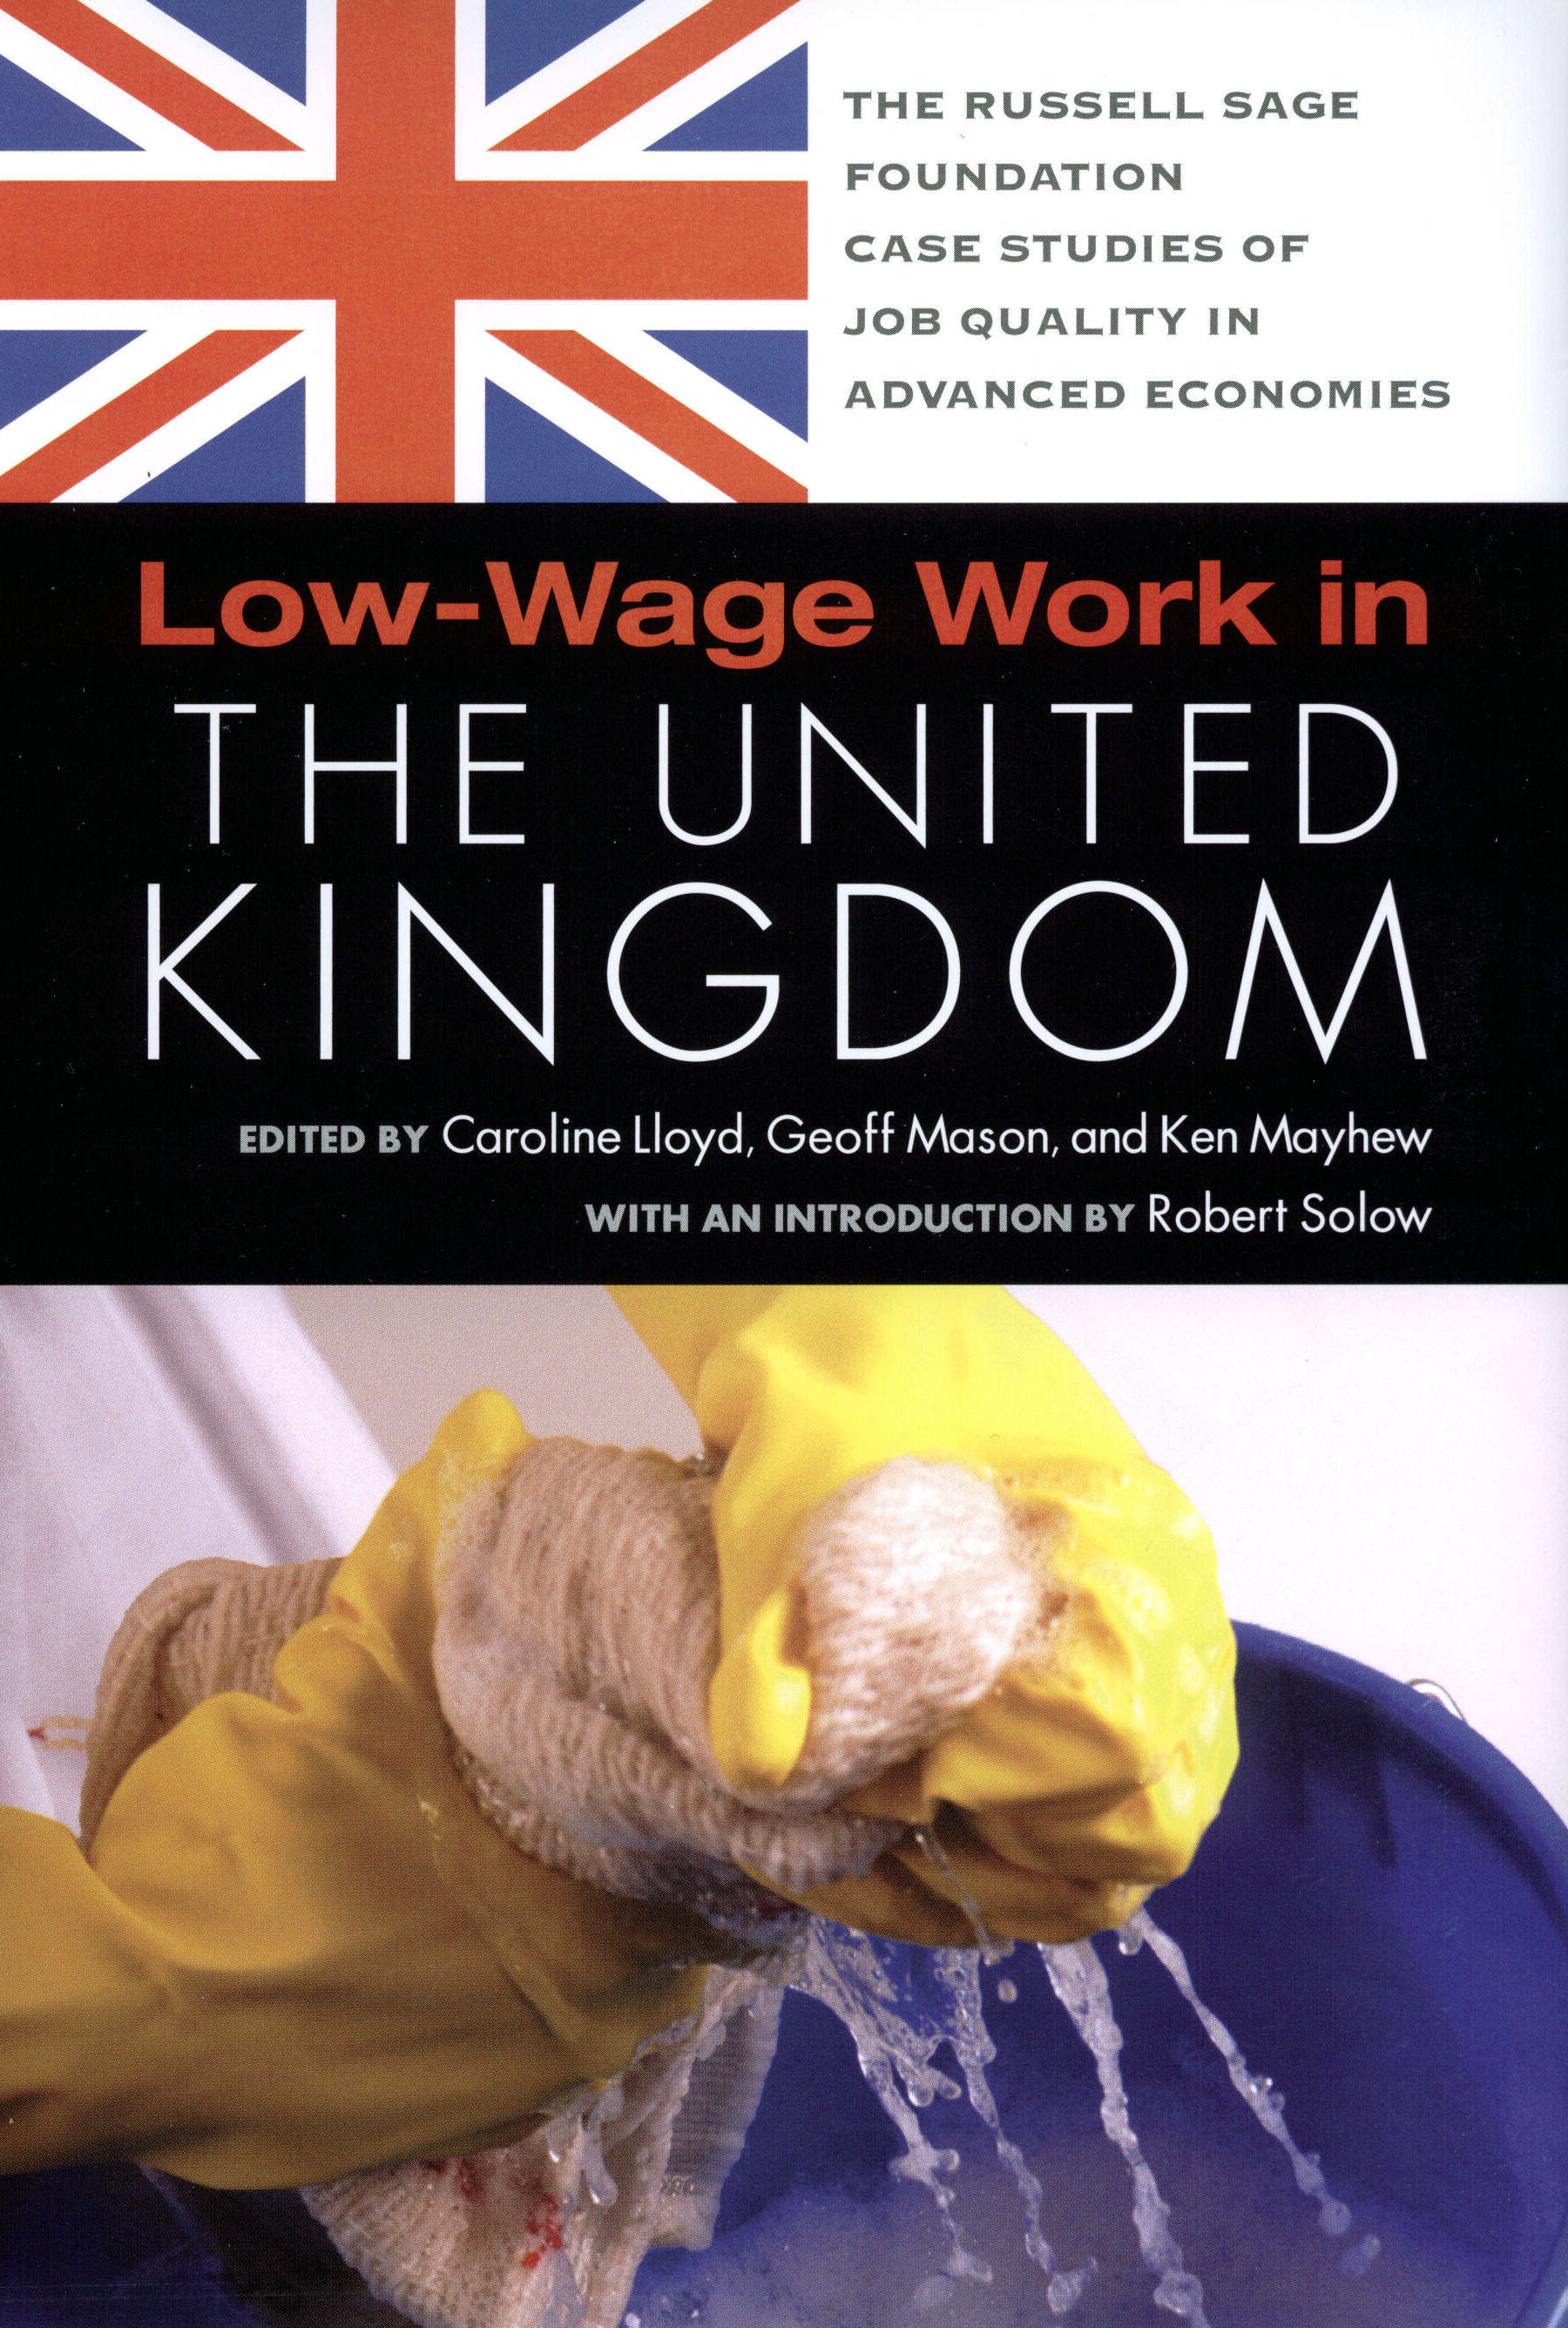 Low-Wage Work in the United Kingdom